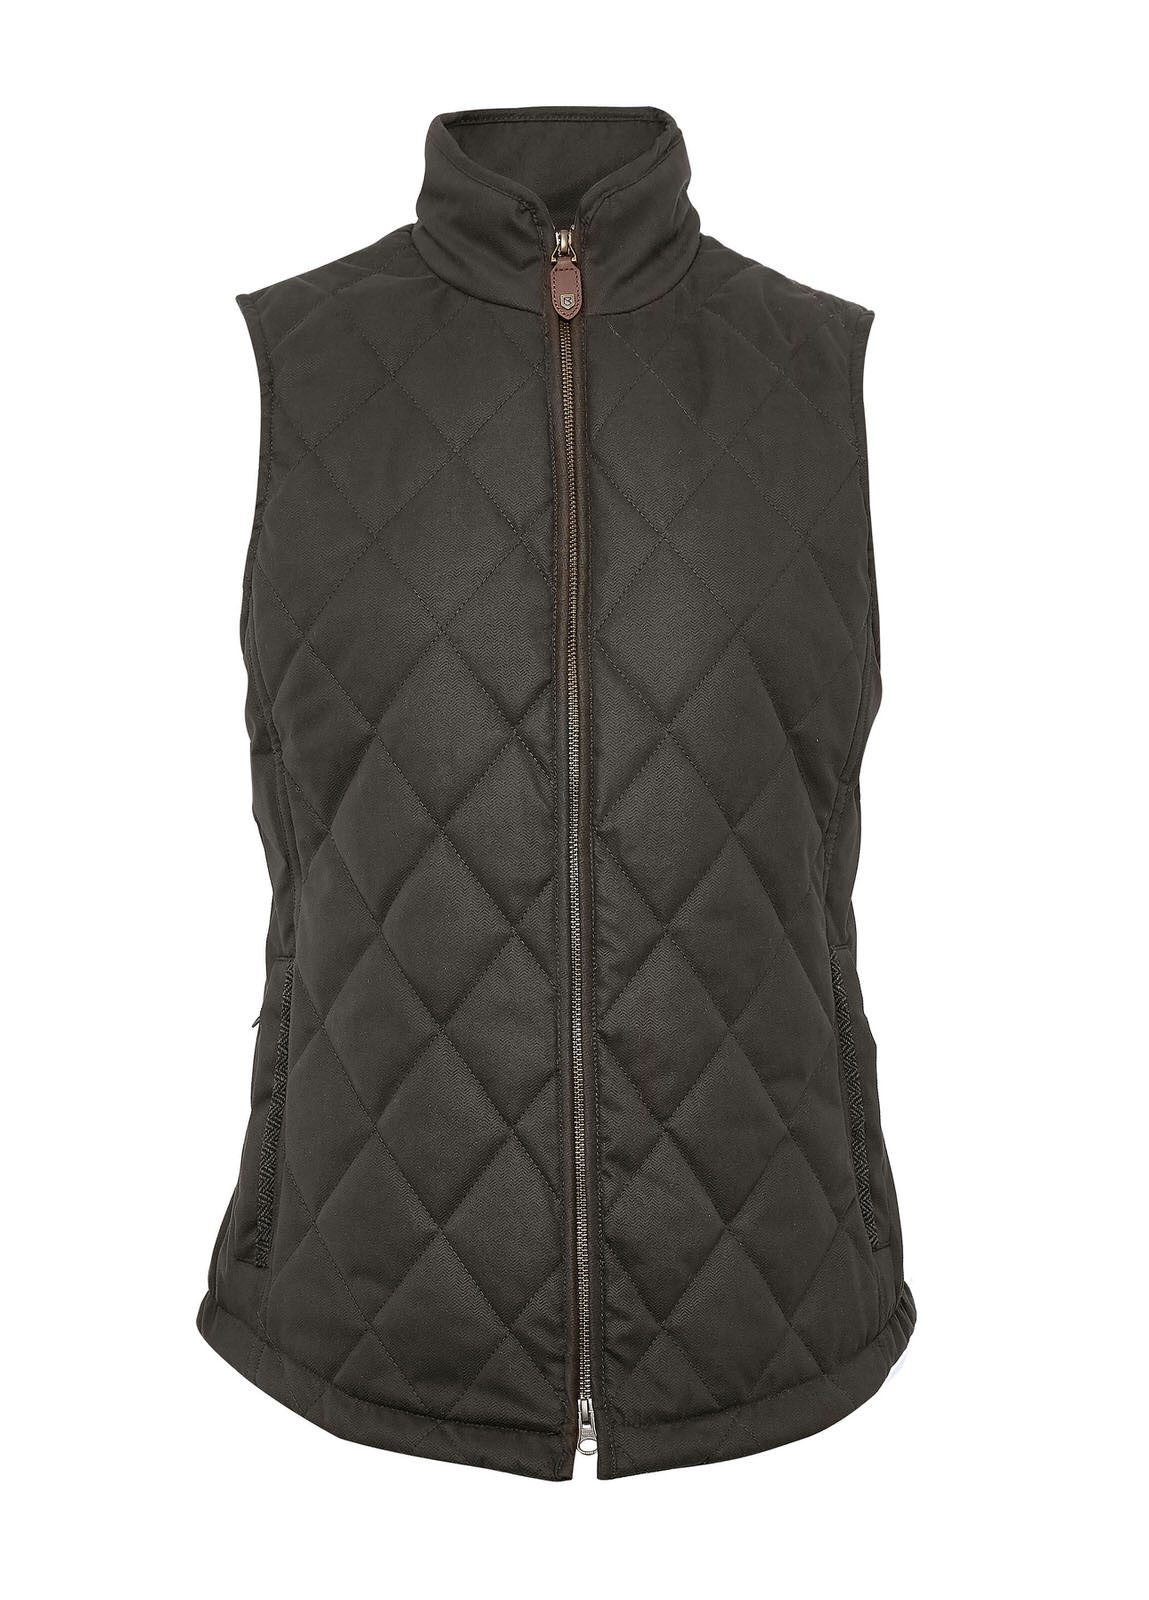 Callaghan_Quilted_Gilet_Verdigris_Image_1